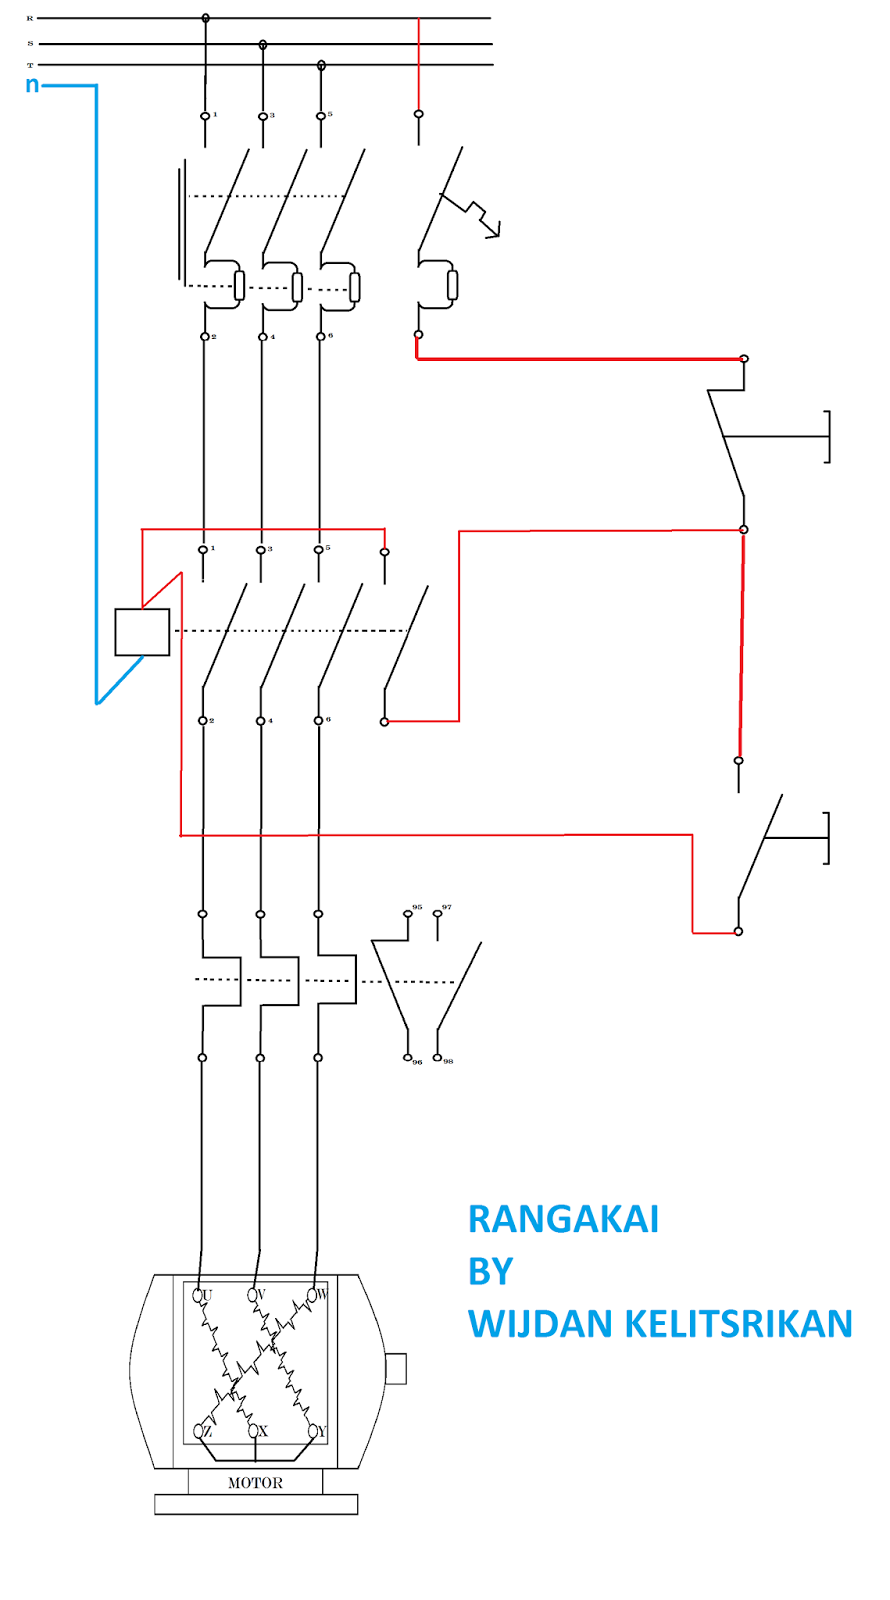 Direct Online Starter Wiring Diagram For Single Phase Dol Power Circuit Reveres Forward Rangkaian Image Kontrol Paling On